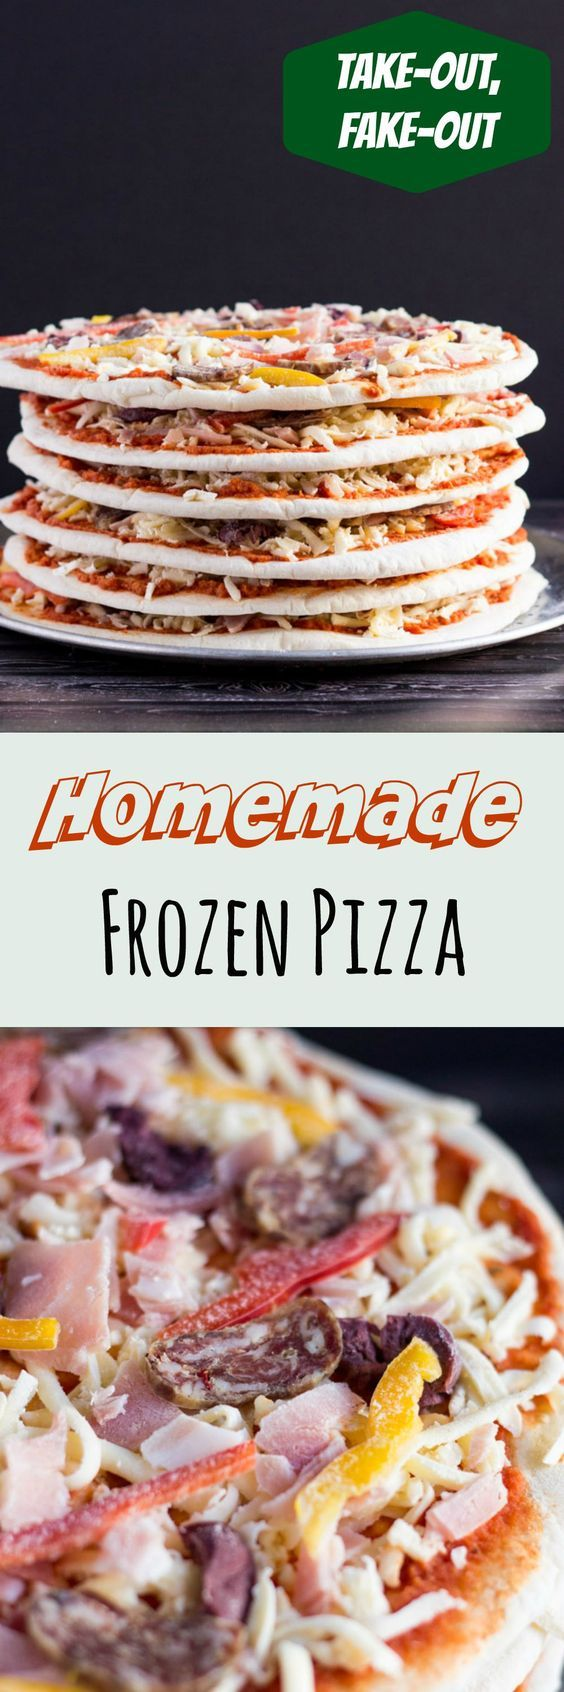 Stash Homemade Frozen Pizza in the freezer for a quick and tasty ready meal. Cheaper than take out, and for no extra cost you can choose your own toppings.